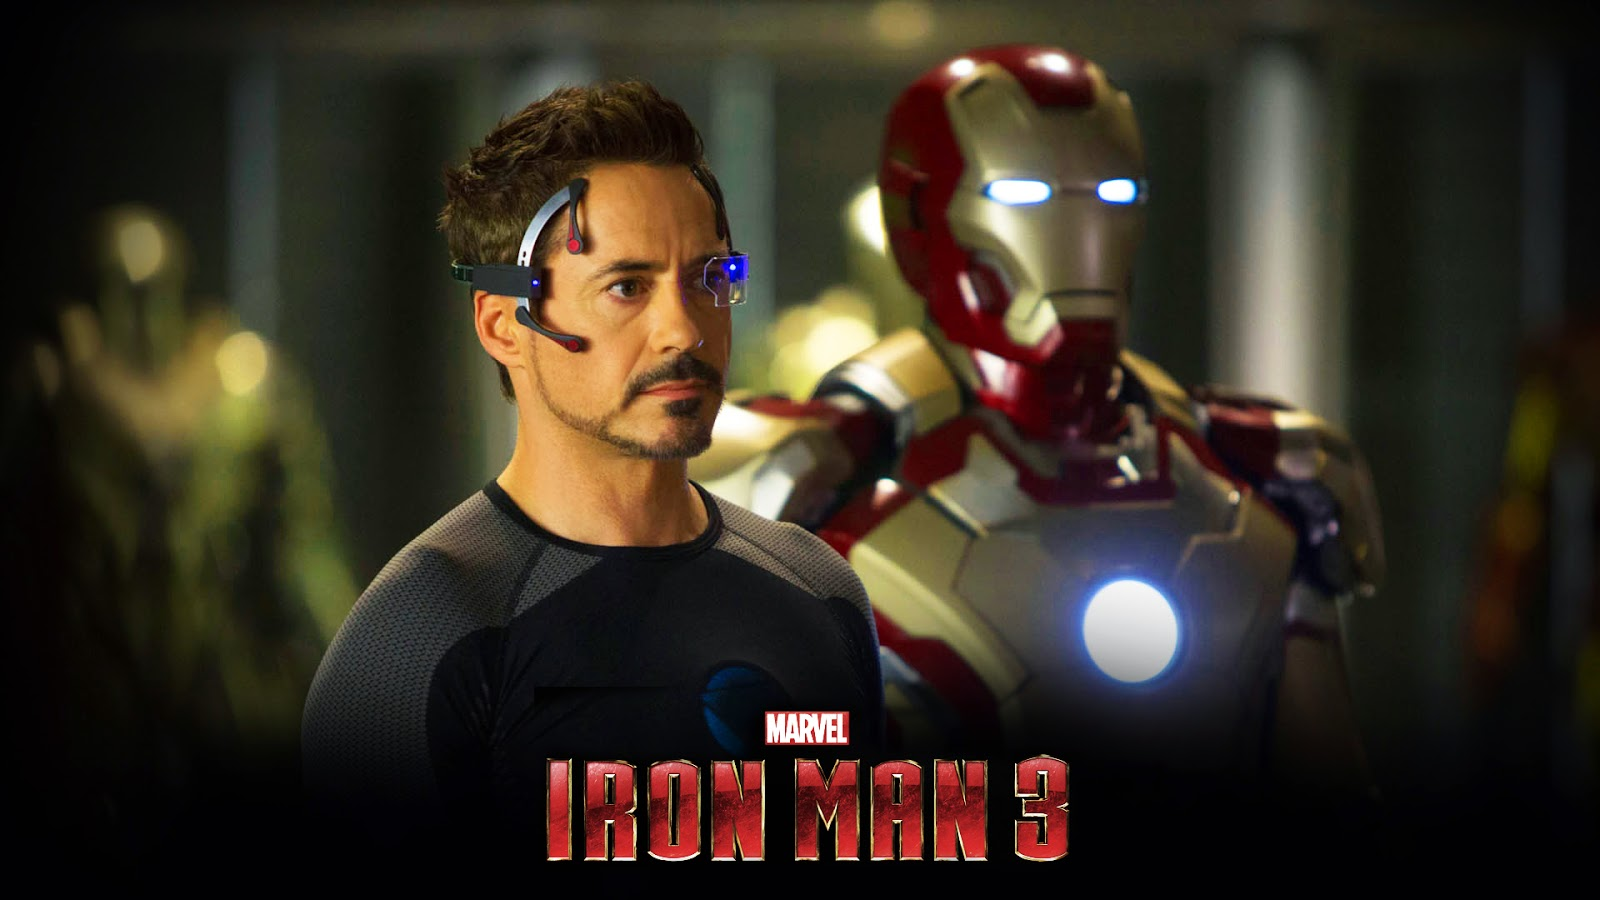 Wallpaper Iron Man 3 HD